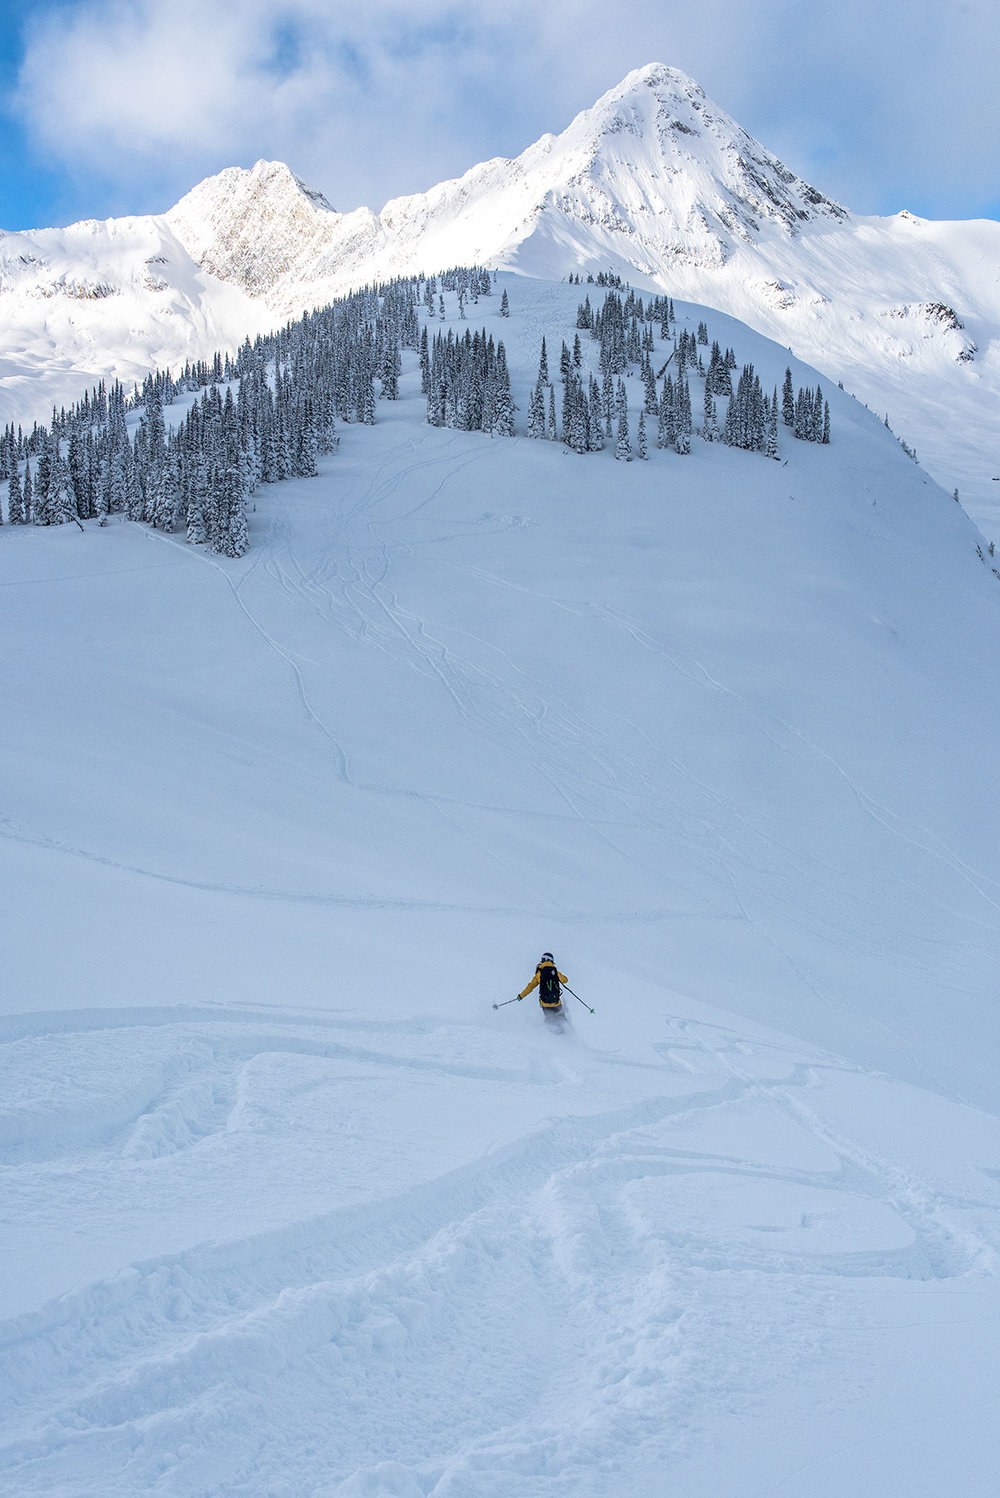 austin-trigg-patagonia-banff-alberta-winter-canada-lifestyle-adventure-mountains-rogers-pass-skiing-touring-backcountry.jpg